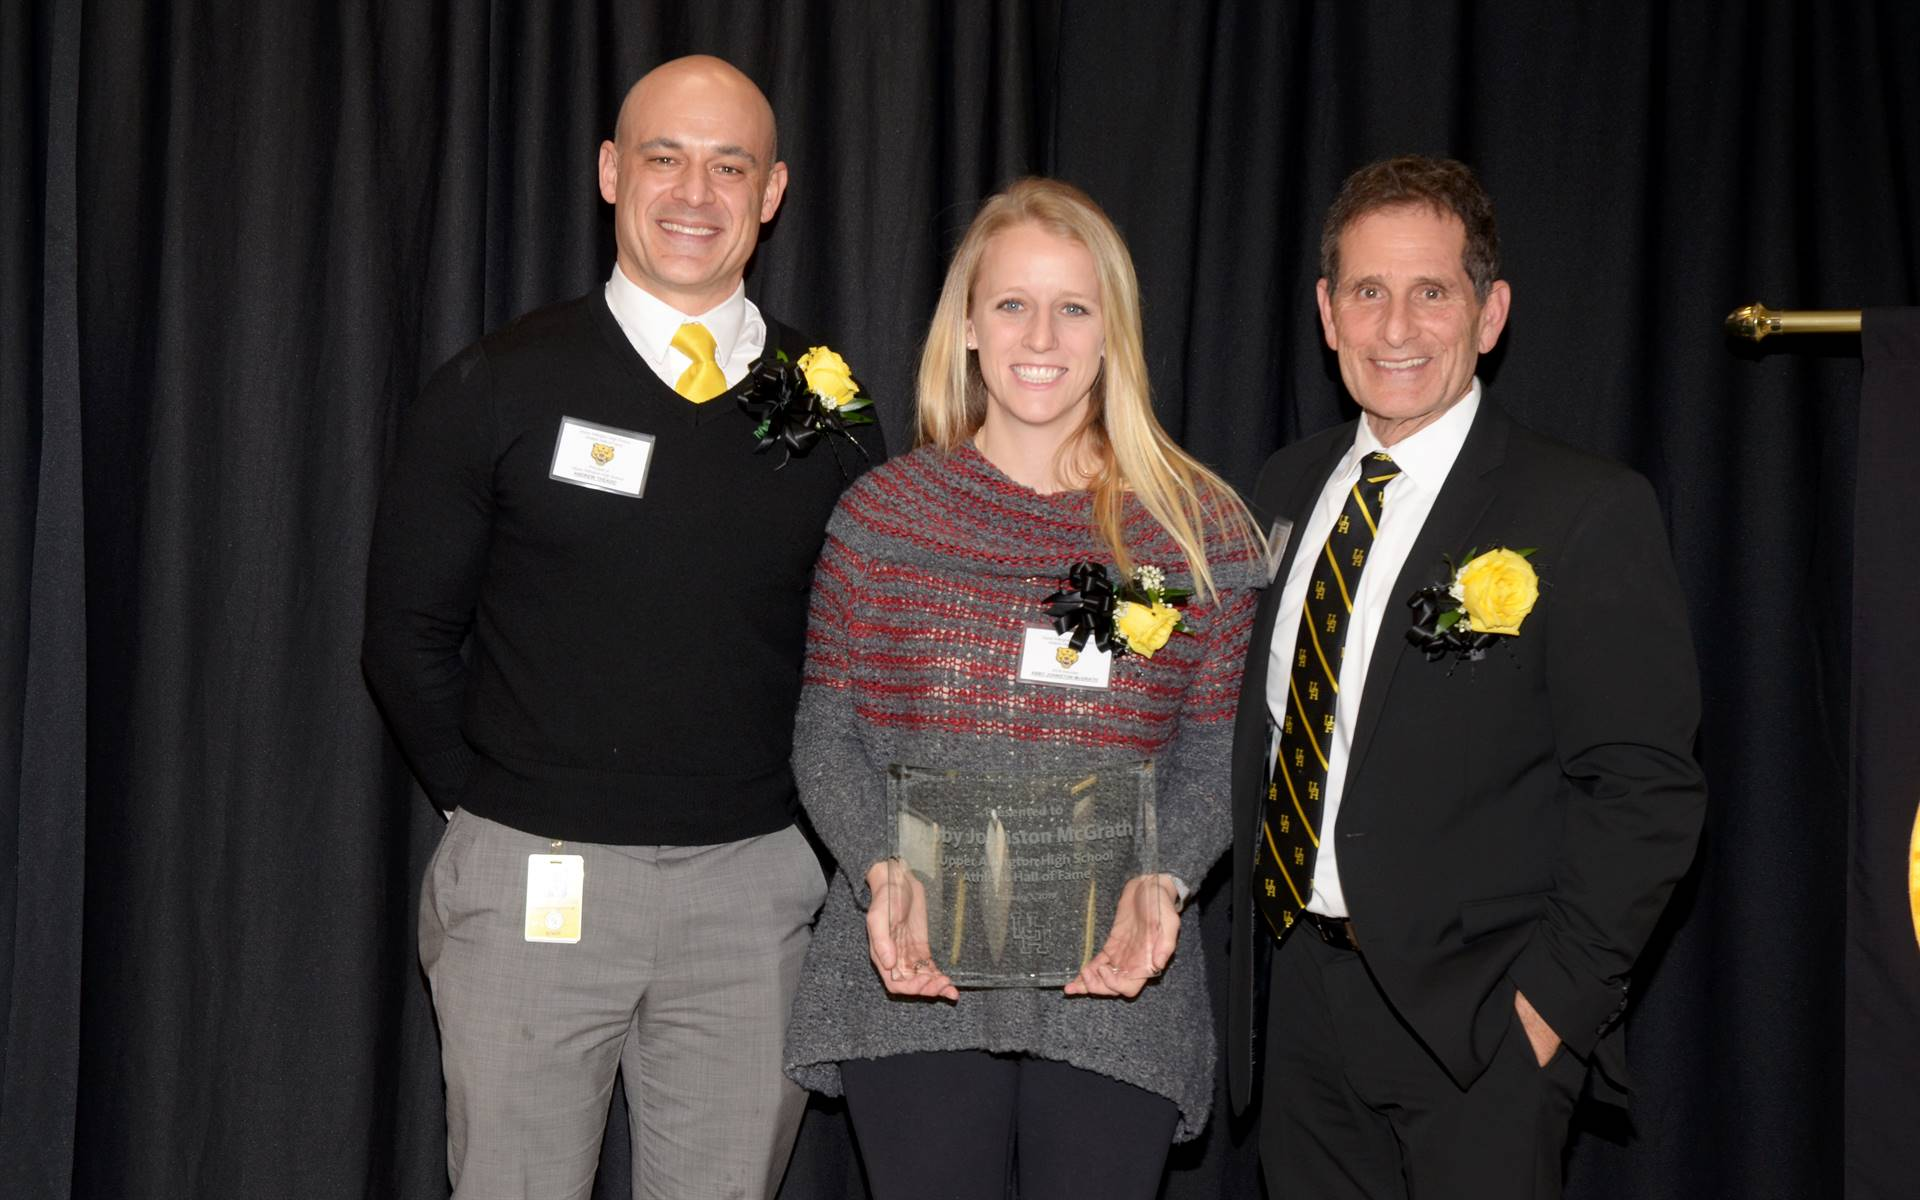 Inductee Abby Johnston McGrath with Principal Andrew Theado and Athletic Director Tony Pusateri